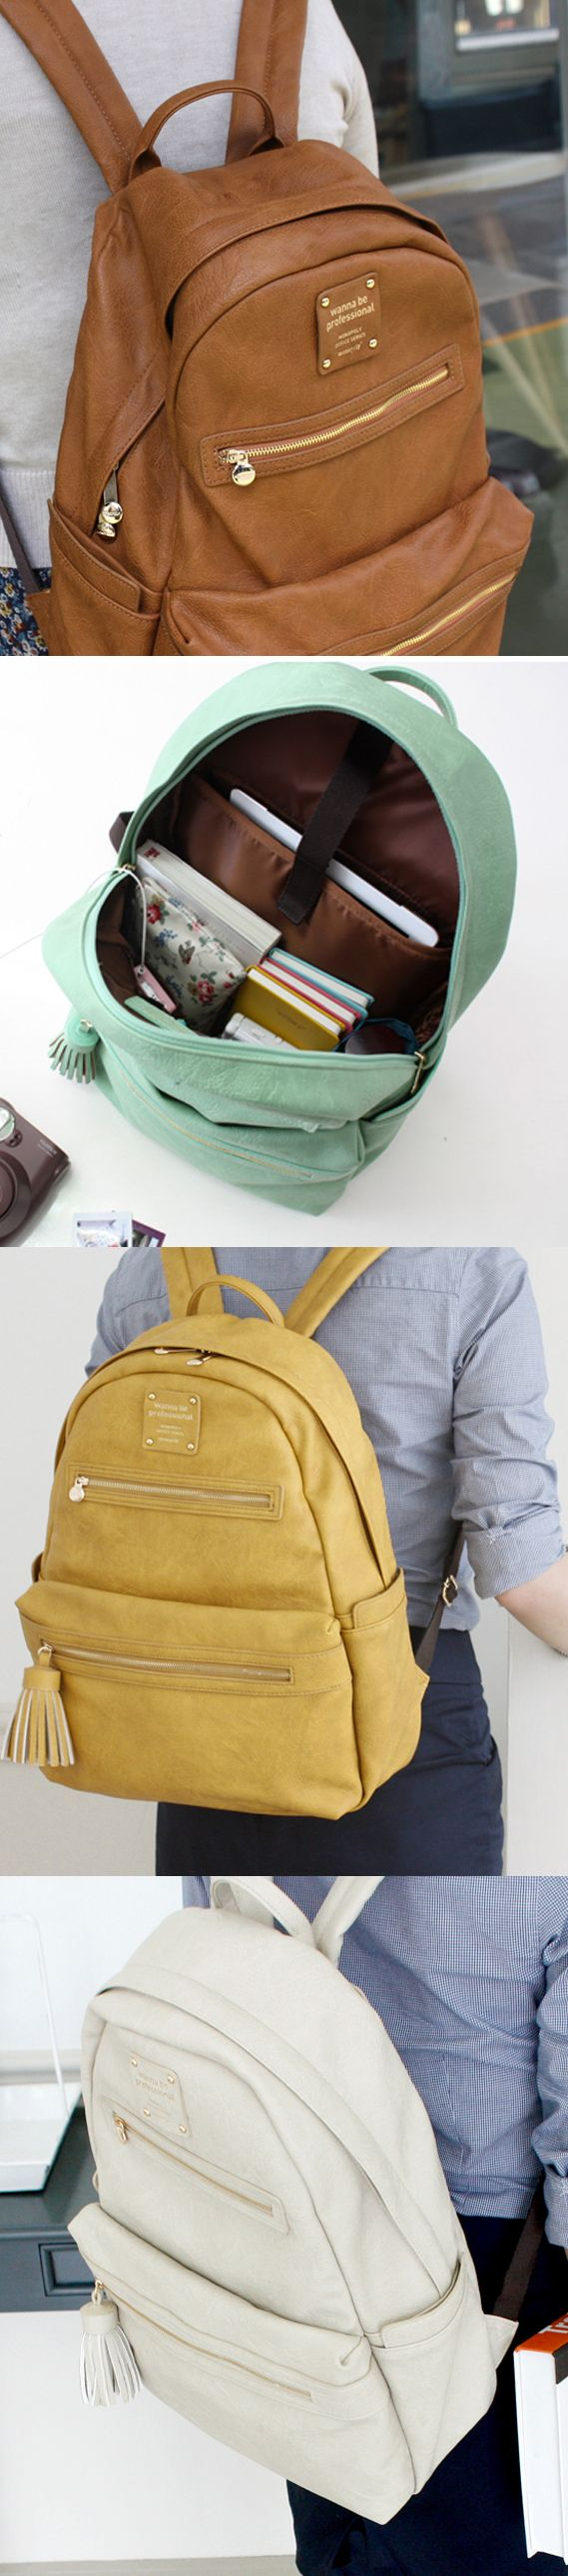 Wow This Backpack Is Just Perfect For School Can Herschel Heritage Abu Store A 13in Laptop In Its Padded Section The Main Pocket Hold All Kinds Of Items